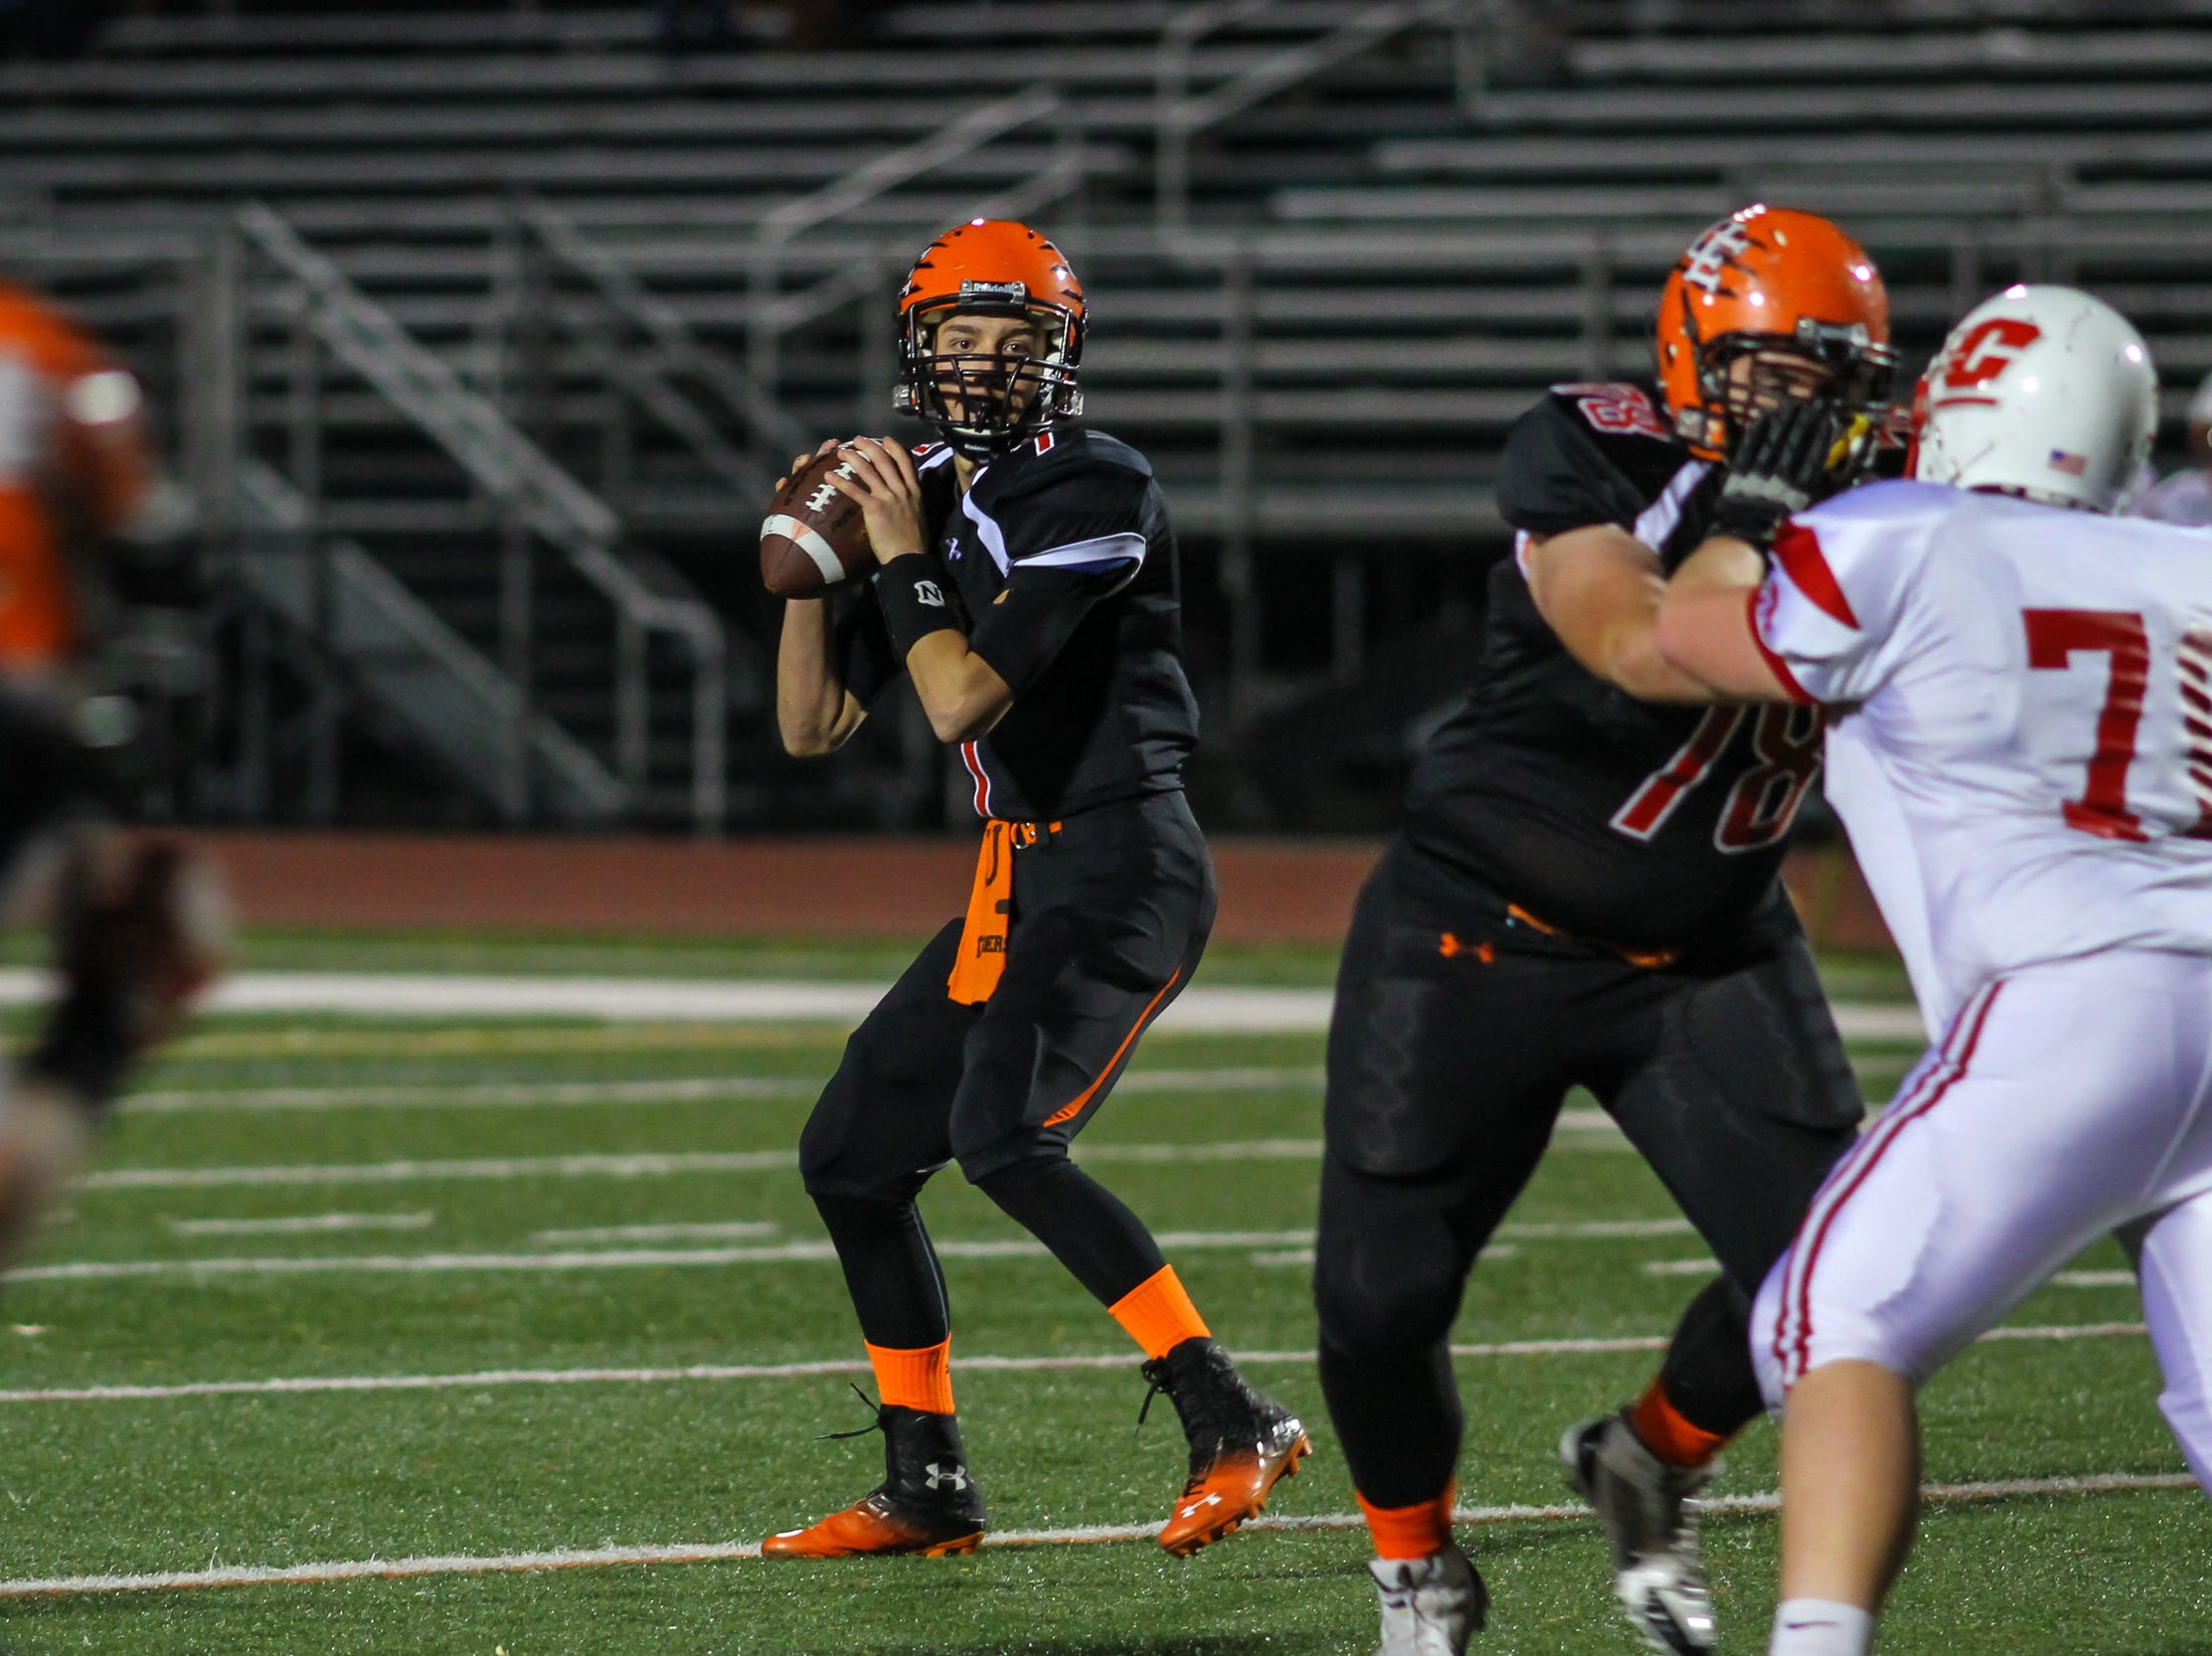 In 2013, Joey Orlando carried Union-Endicott with a 228-yard, five-touchdown performance against Carthage in the Tigers' 43-7 victory in the Class A state quarterfinals at Vestal's Dick Hoover Stadium.